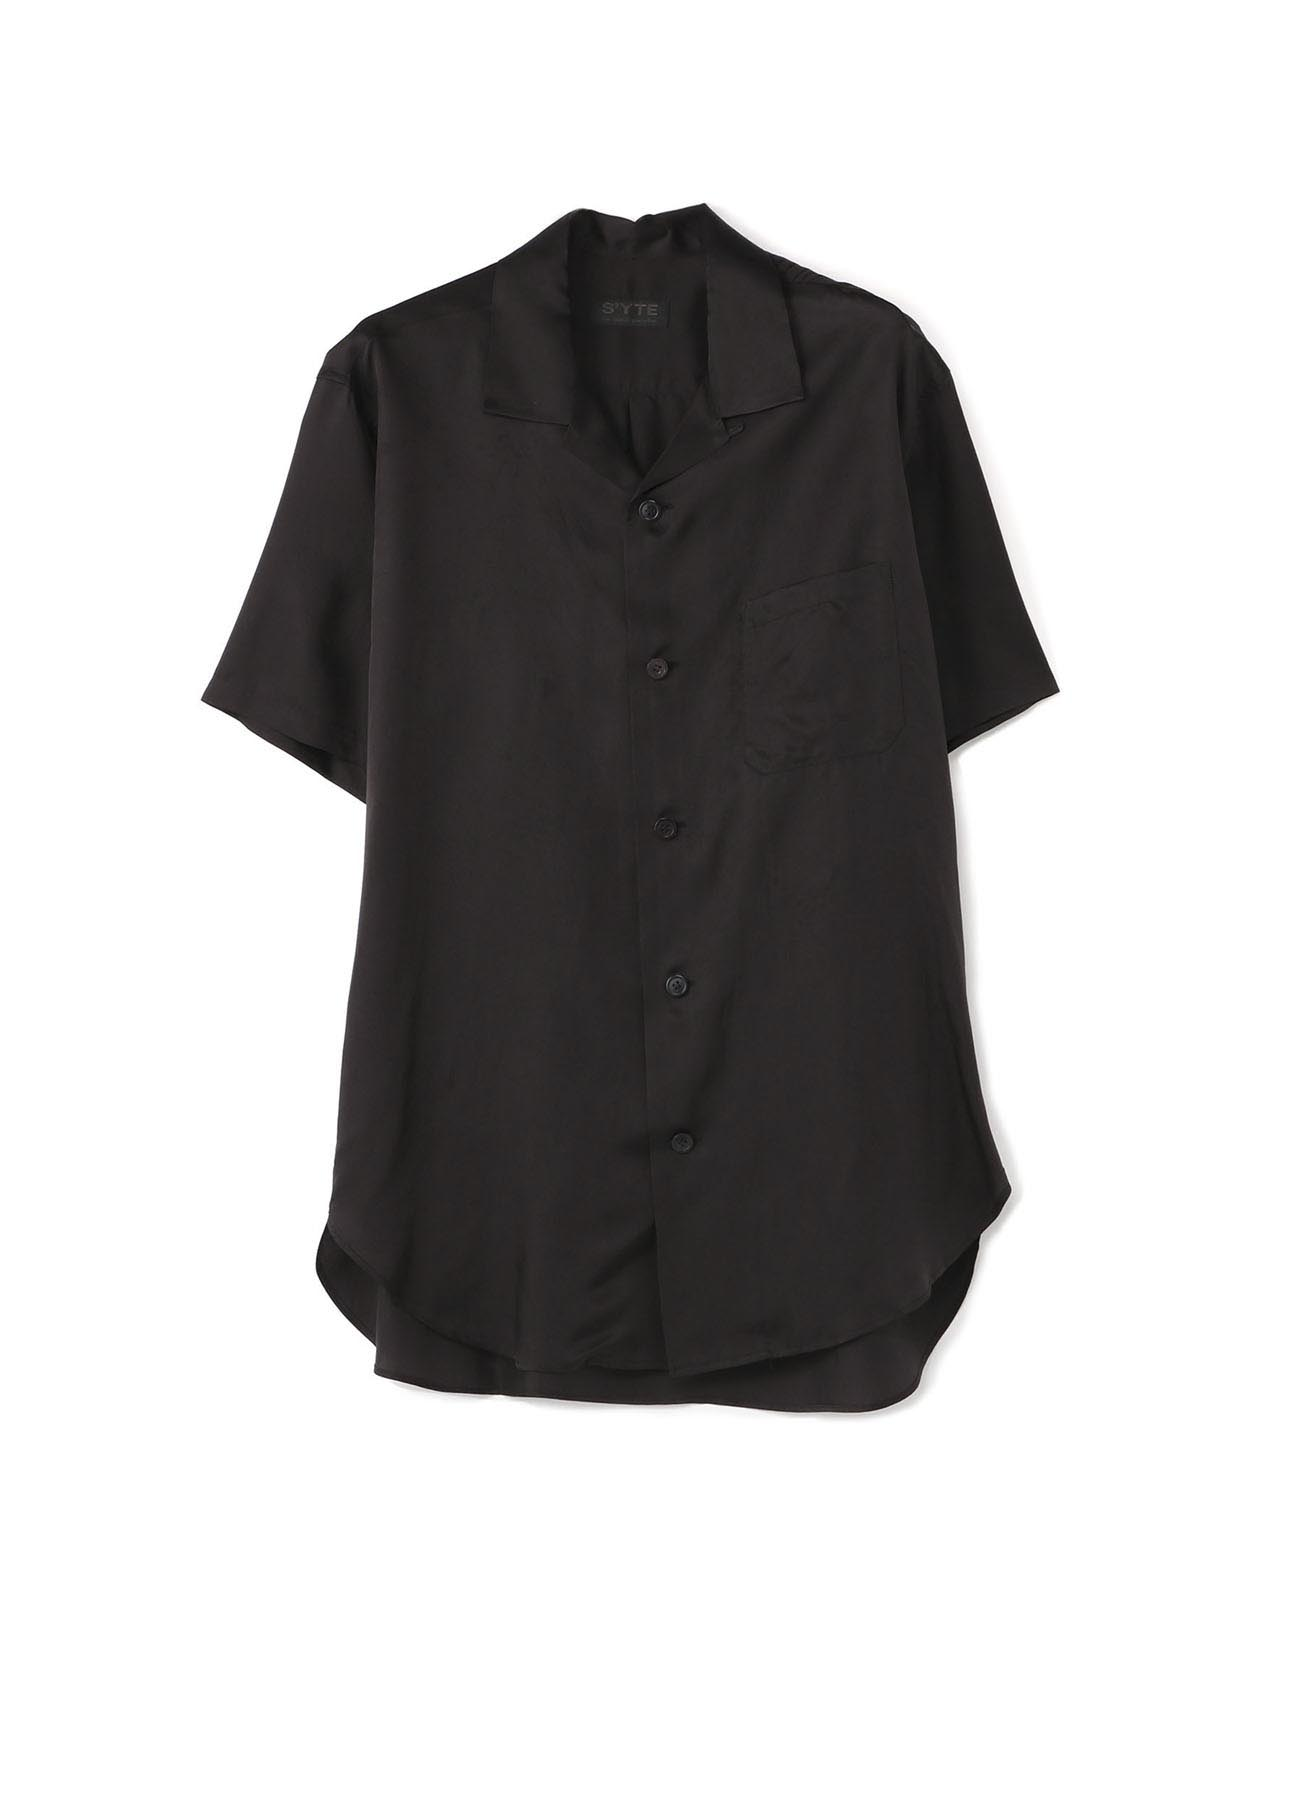 Cupro twill washer Short-sleeved open collar shirt